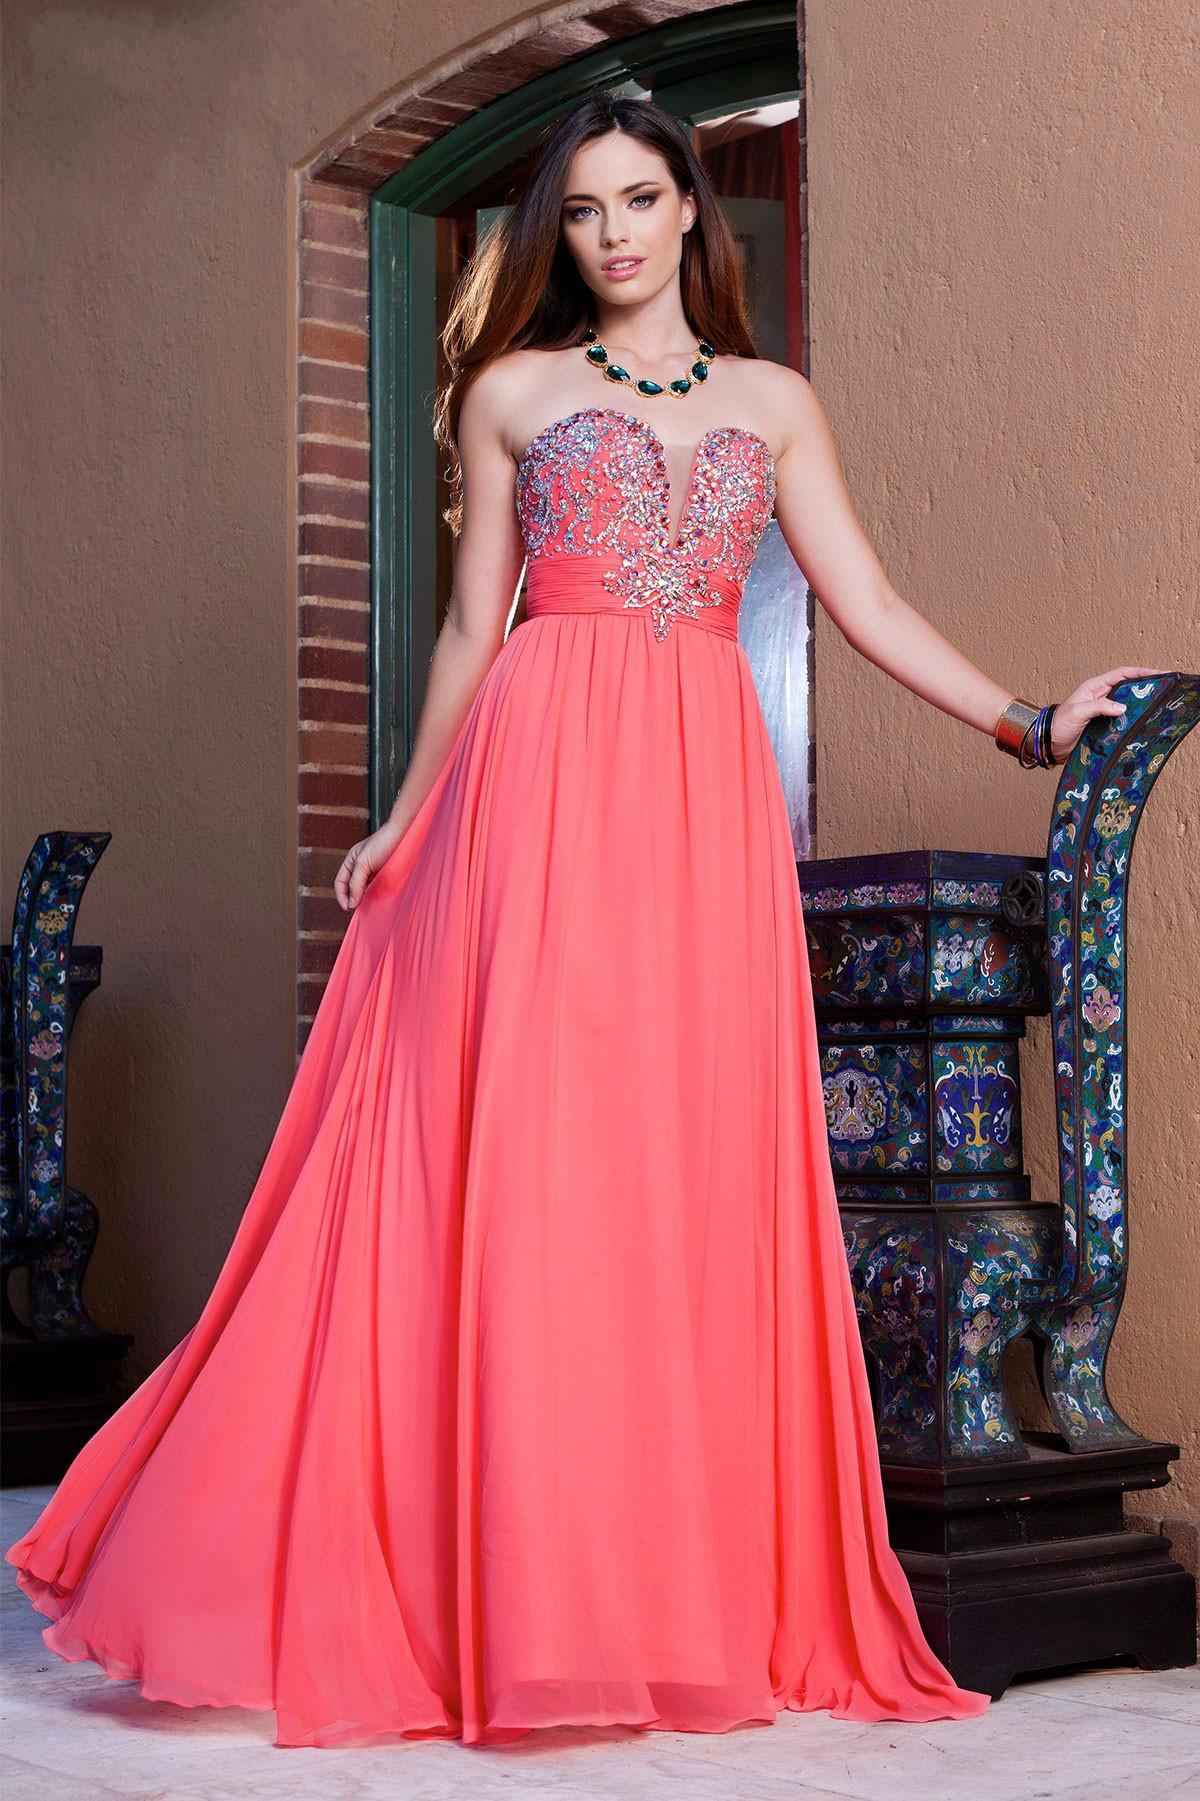 2014 Hot Beach Sexy Sweetheart Navy Blue Chiffon Beads Rhinestones Prom Dresses Floor Length Evening Gowns